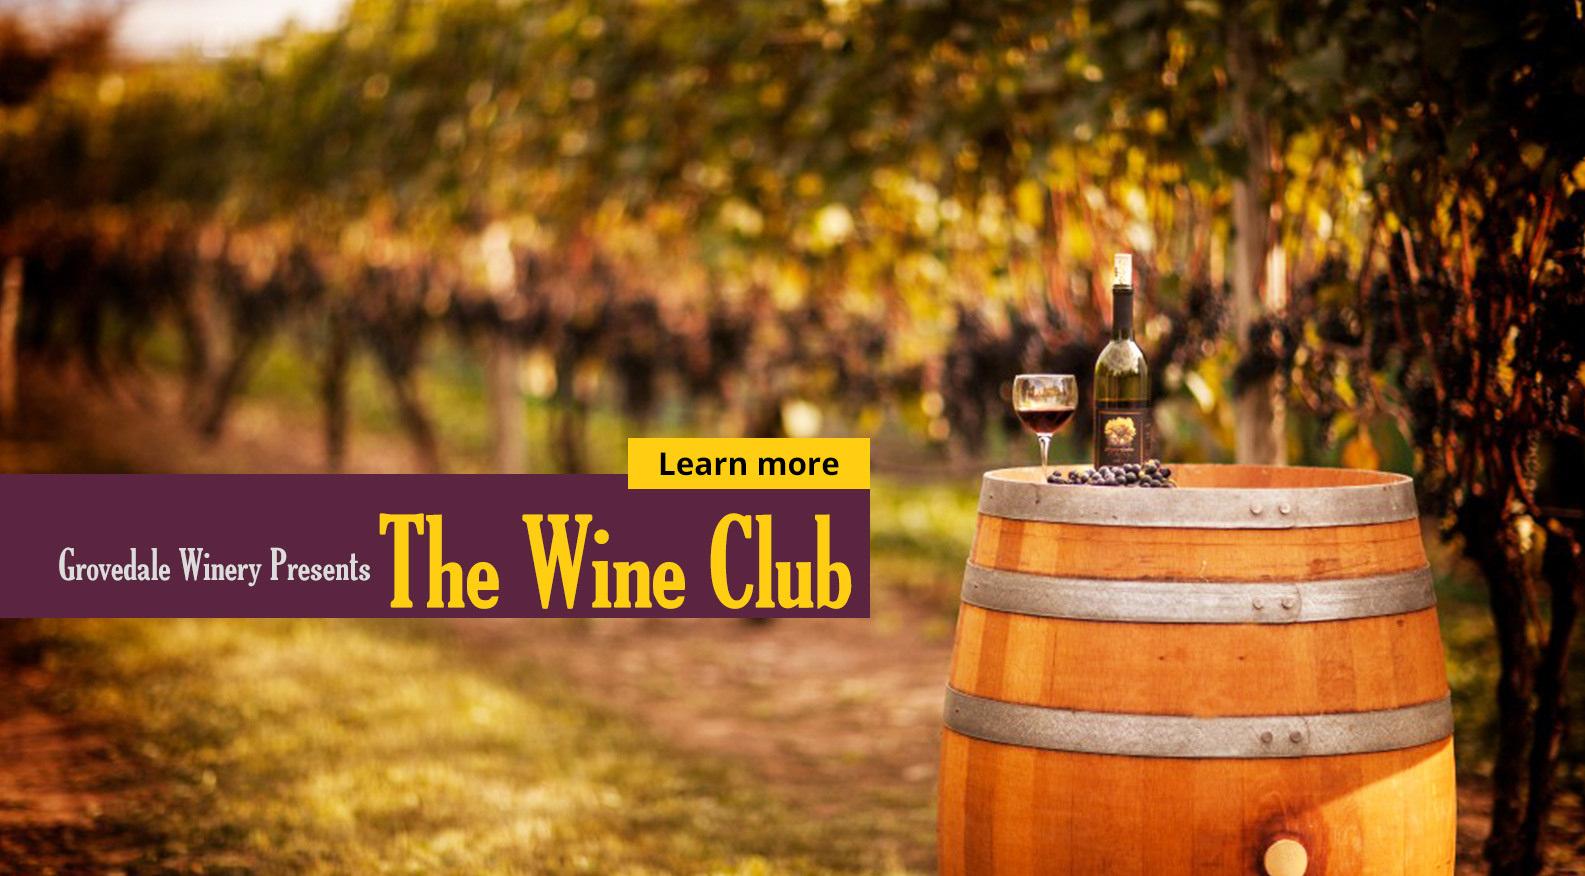 Grovedale Winery Wine Club